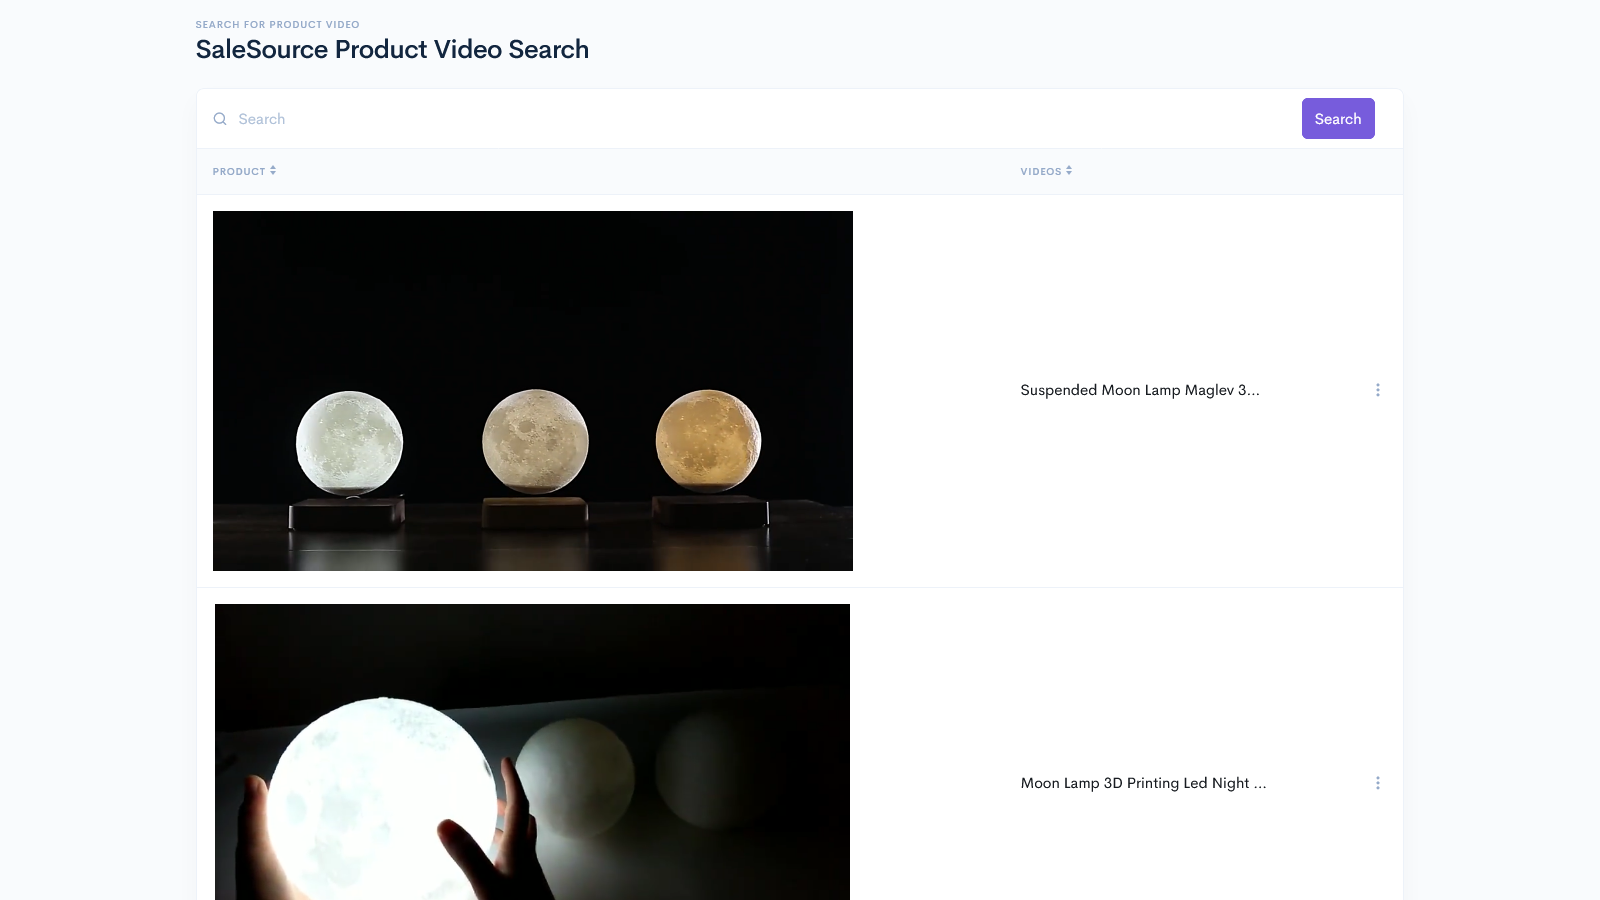 SaleSource Product Video Database